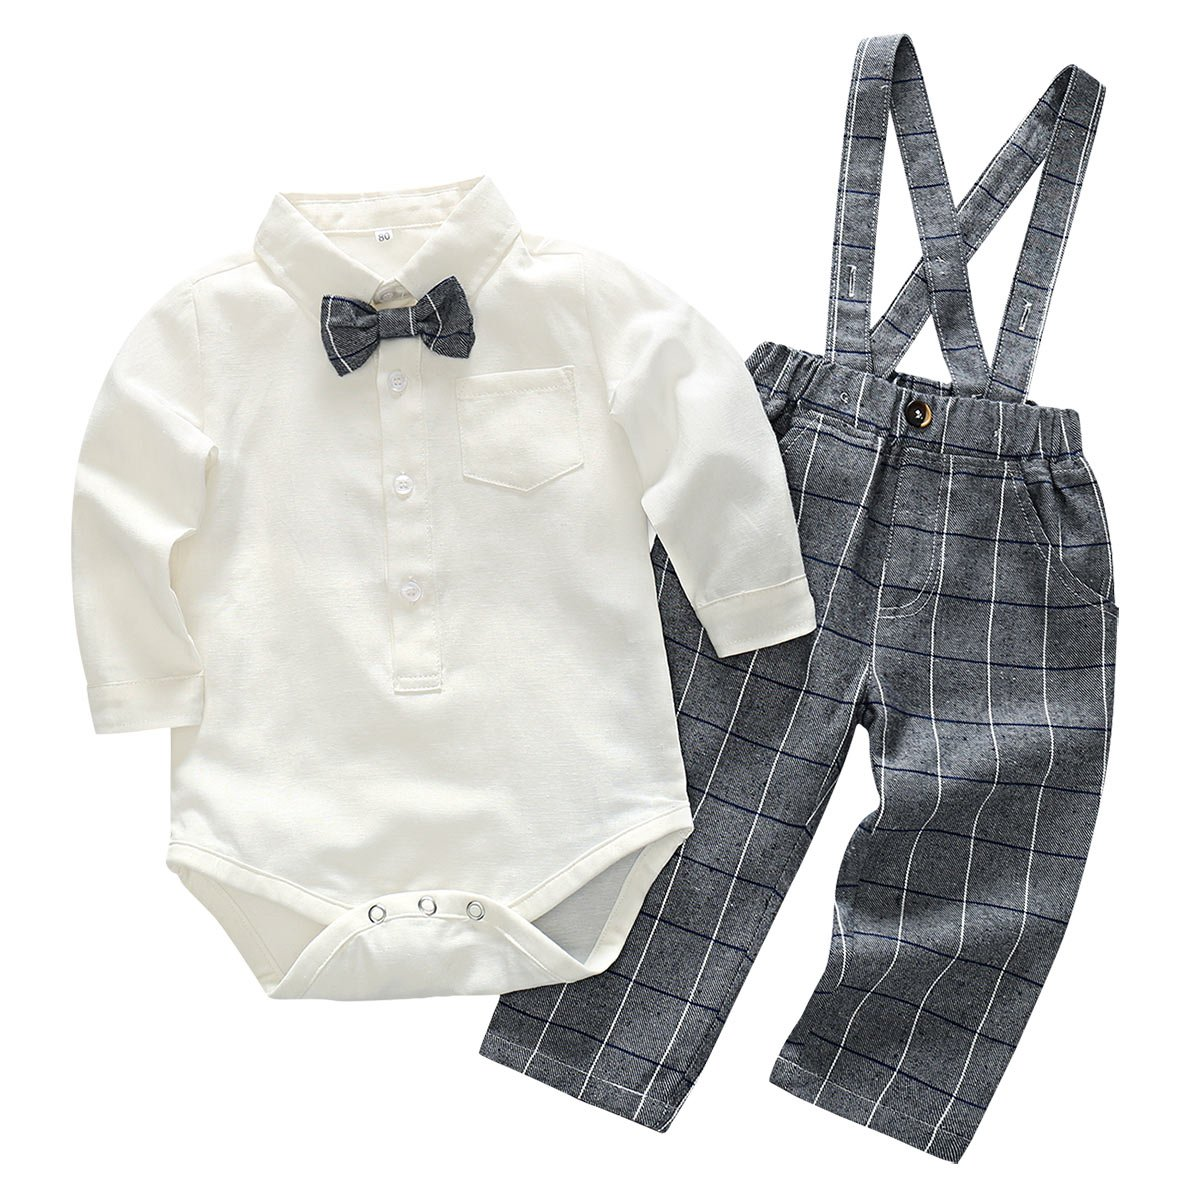 Newborn Baby Boy Gentlemen Rompers Suit Plaid Suspender Pants Outfit Wedding Formal Wear with Bowtie White/Grey for 12-18 Months